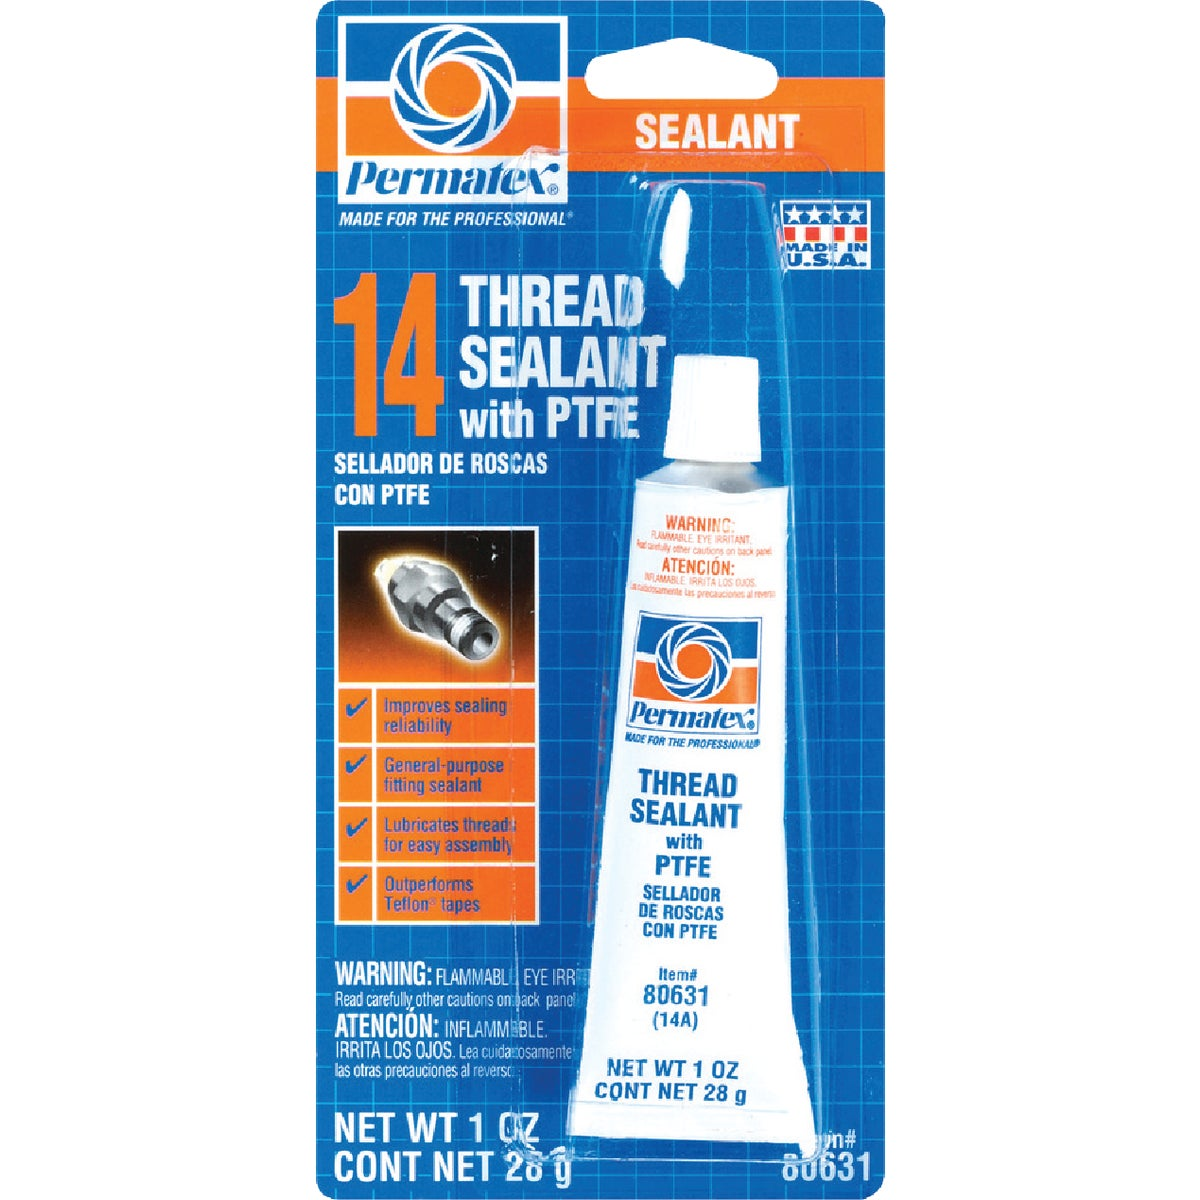 1OZ THREAD SEALANT - 80631 by Permatex Inc